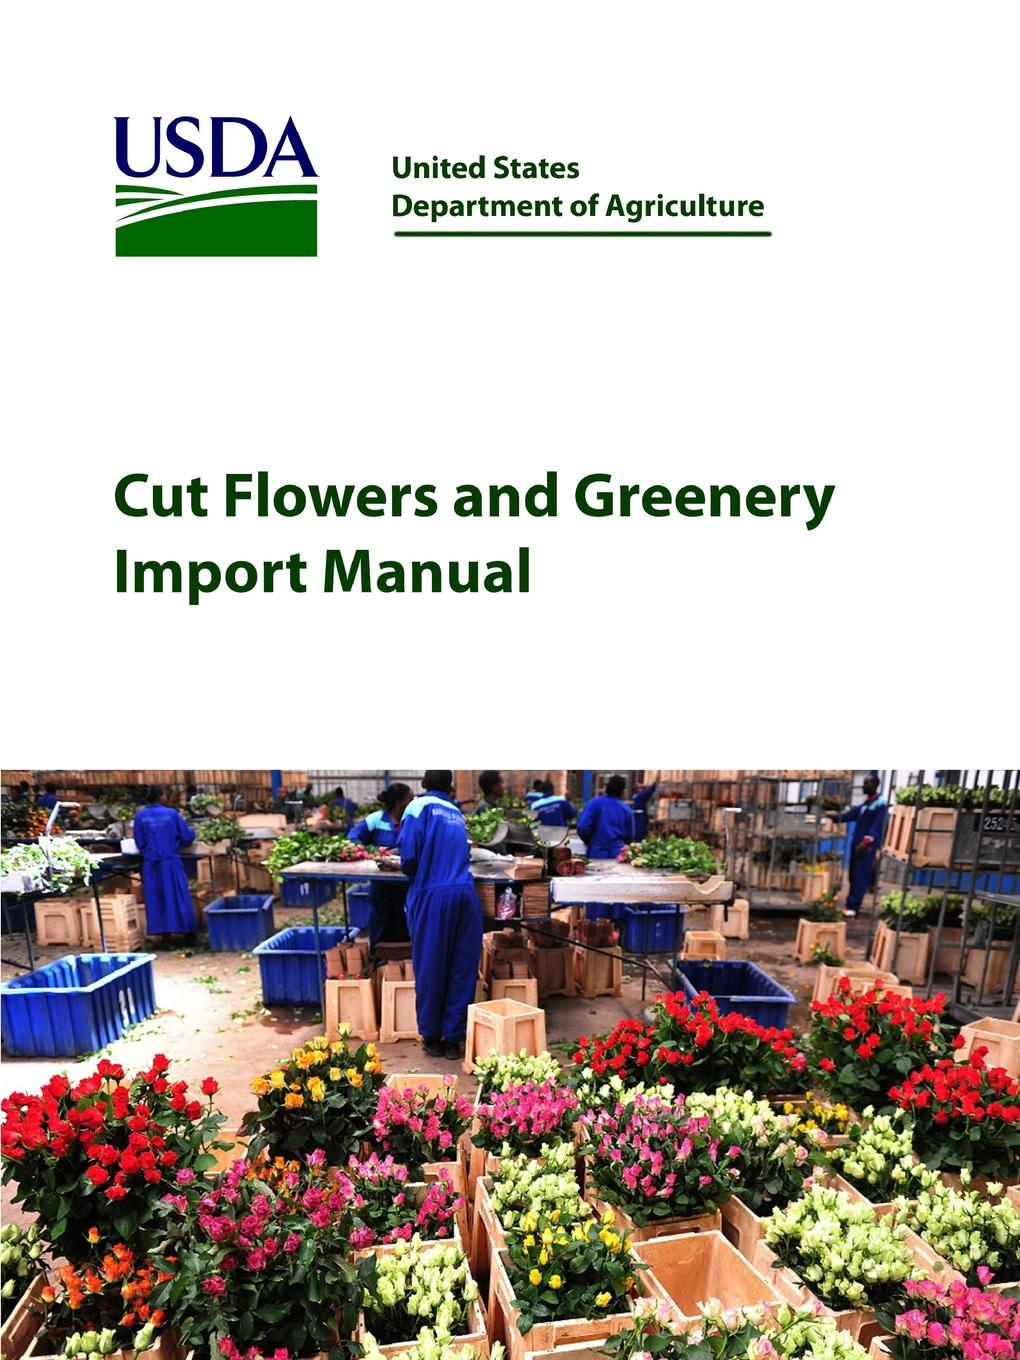 United States Department of Agriculture Cut Flowers and Greenery Import Manual the damage manual